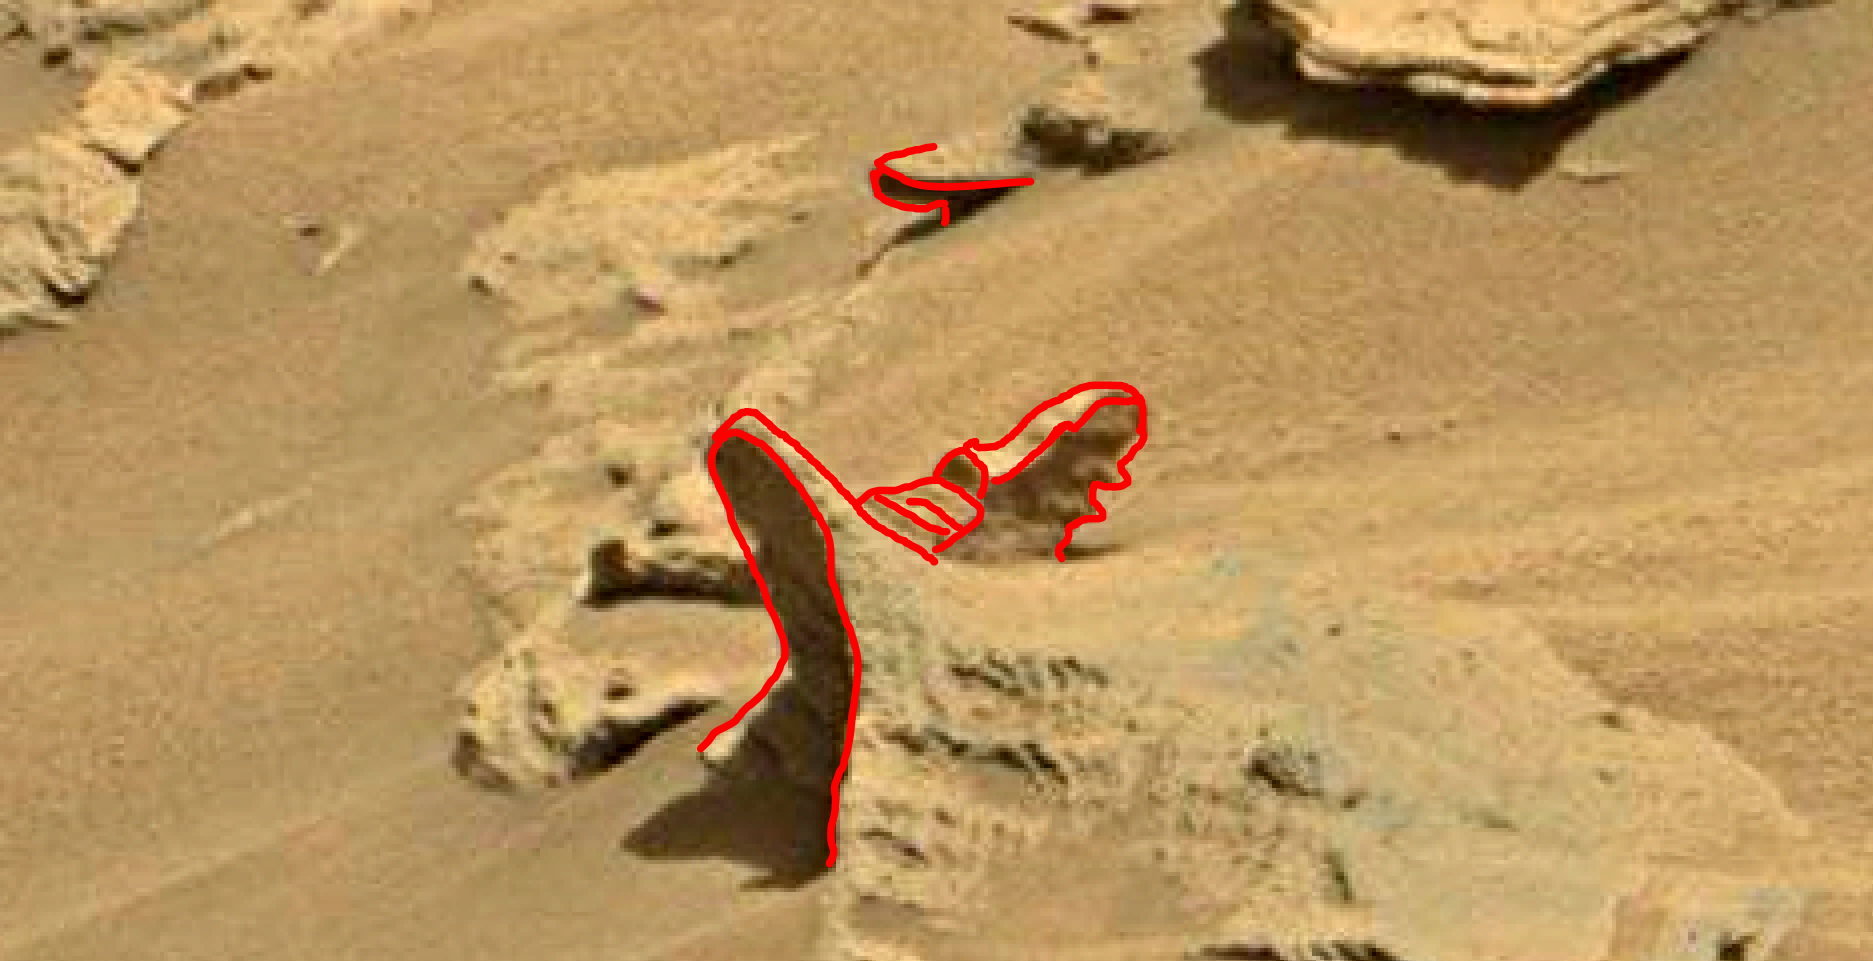 mars sol 1346 anomaly-artifacts 11a was life on mars